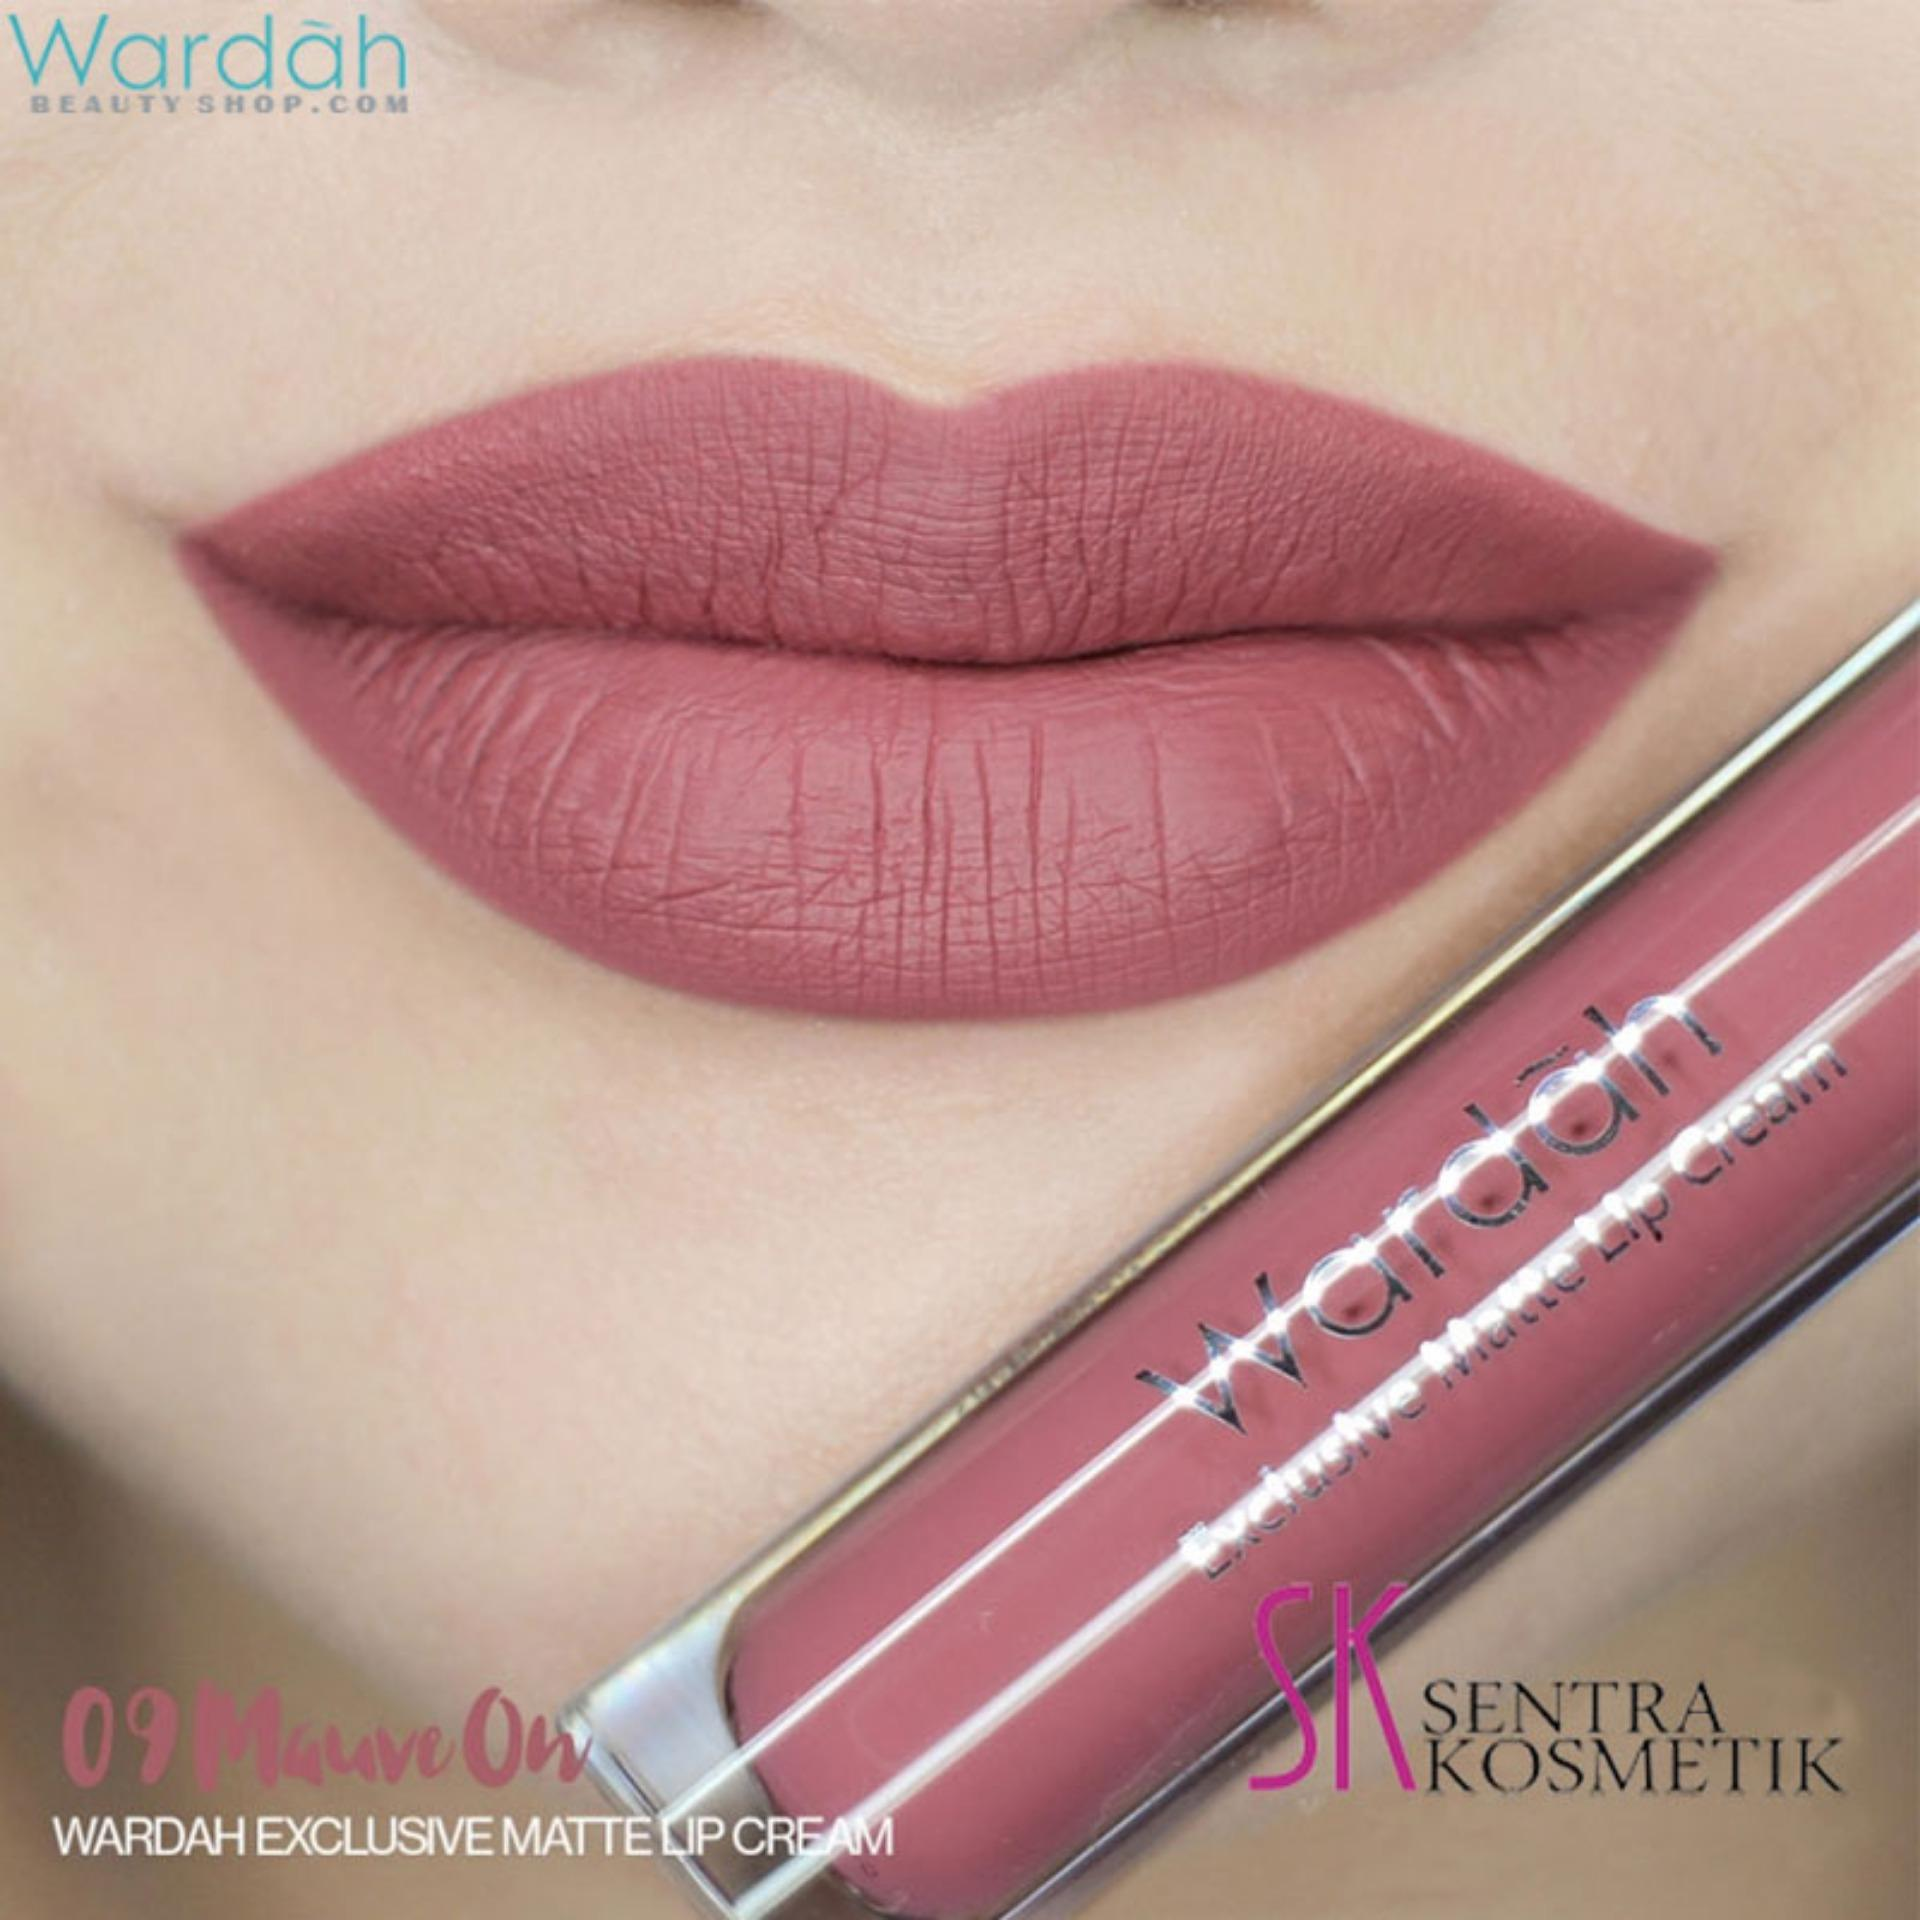 Wardah Exclusive Matte Lip Cream 09 Sembilan Mauve On Lazada